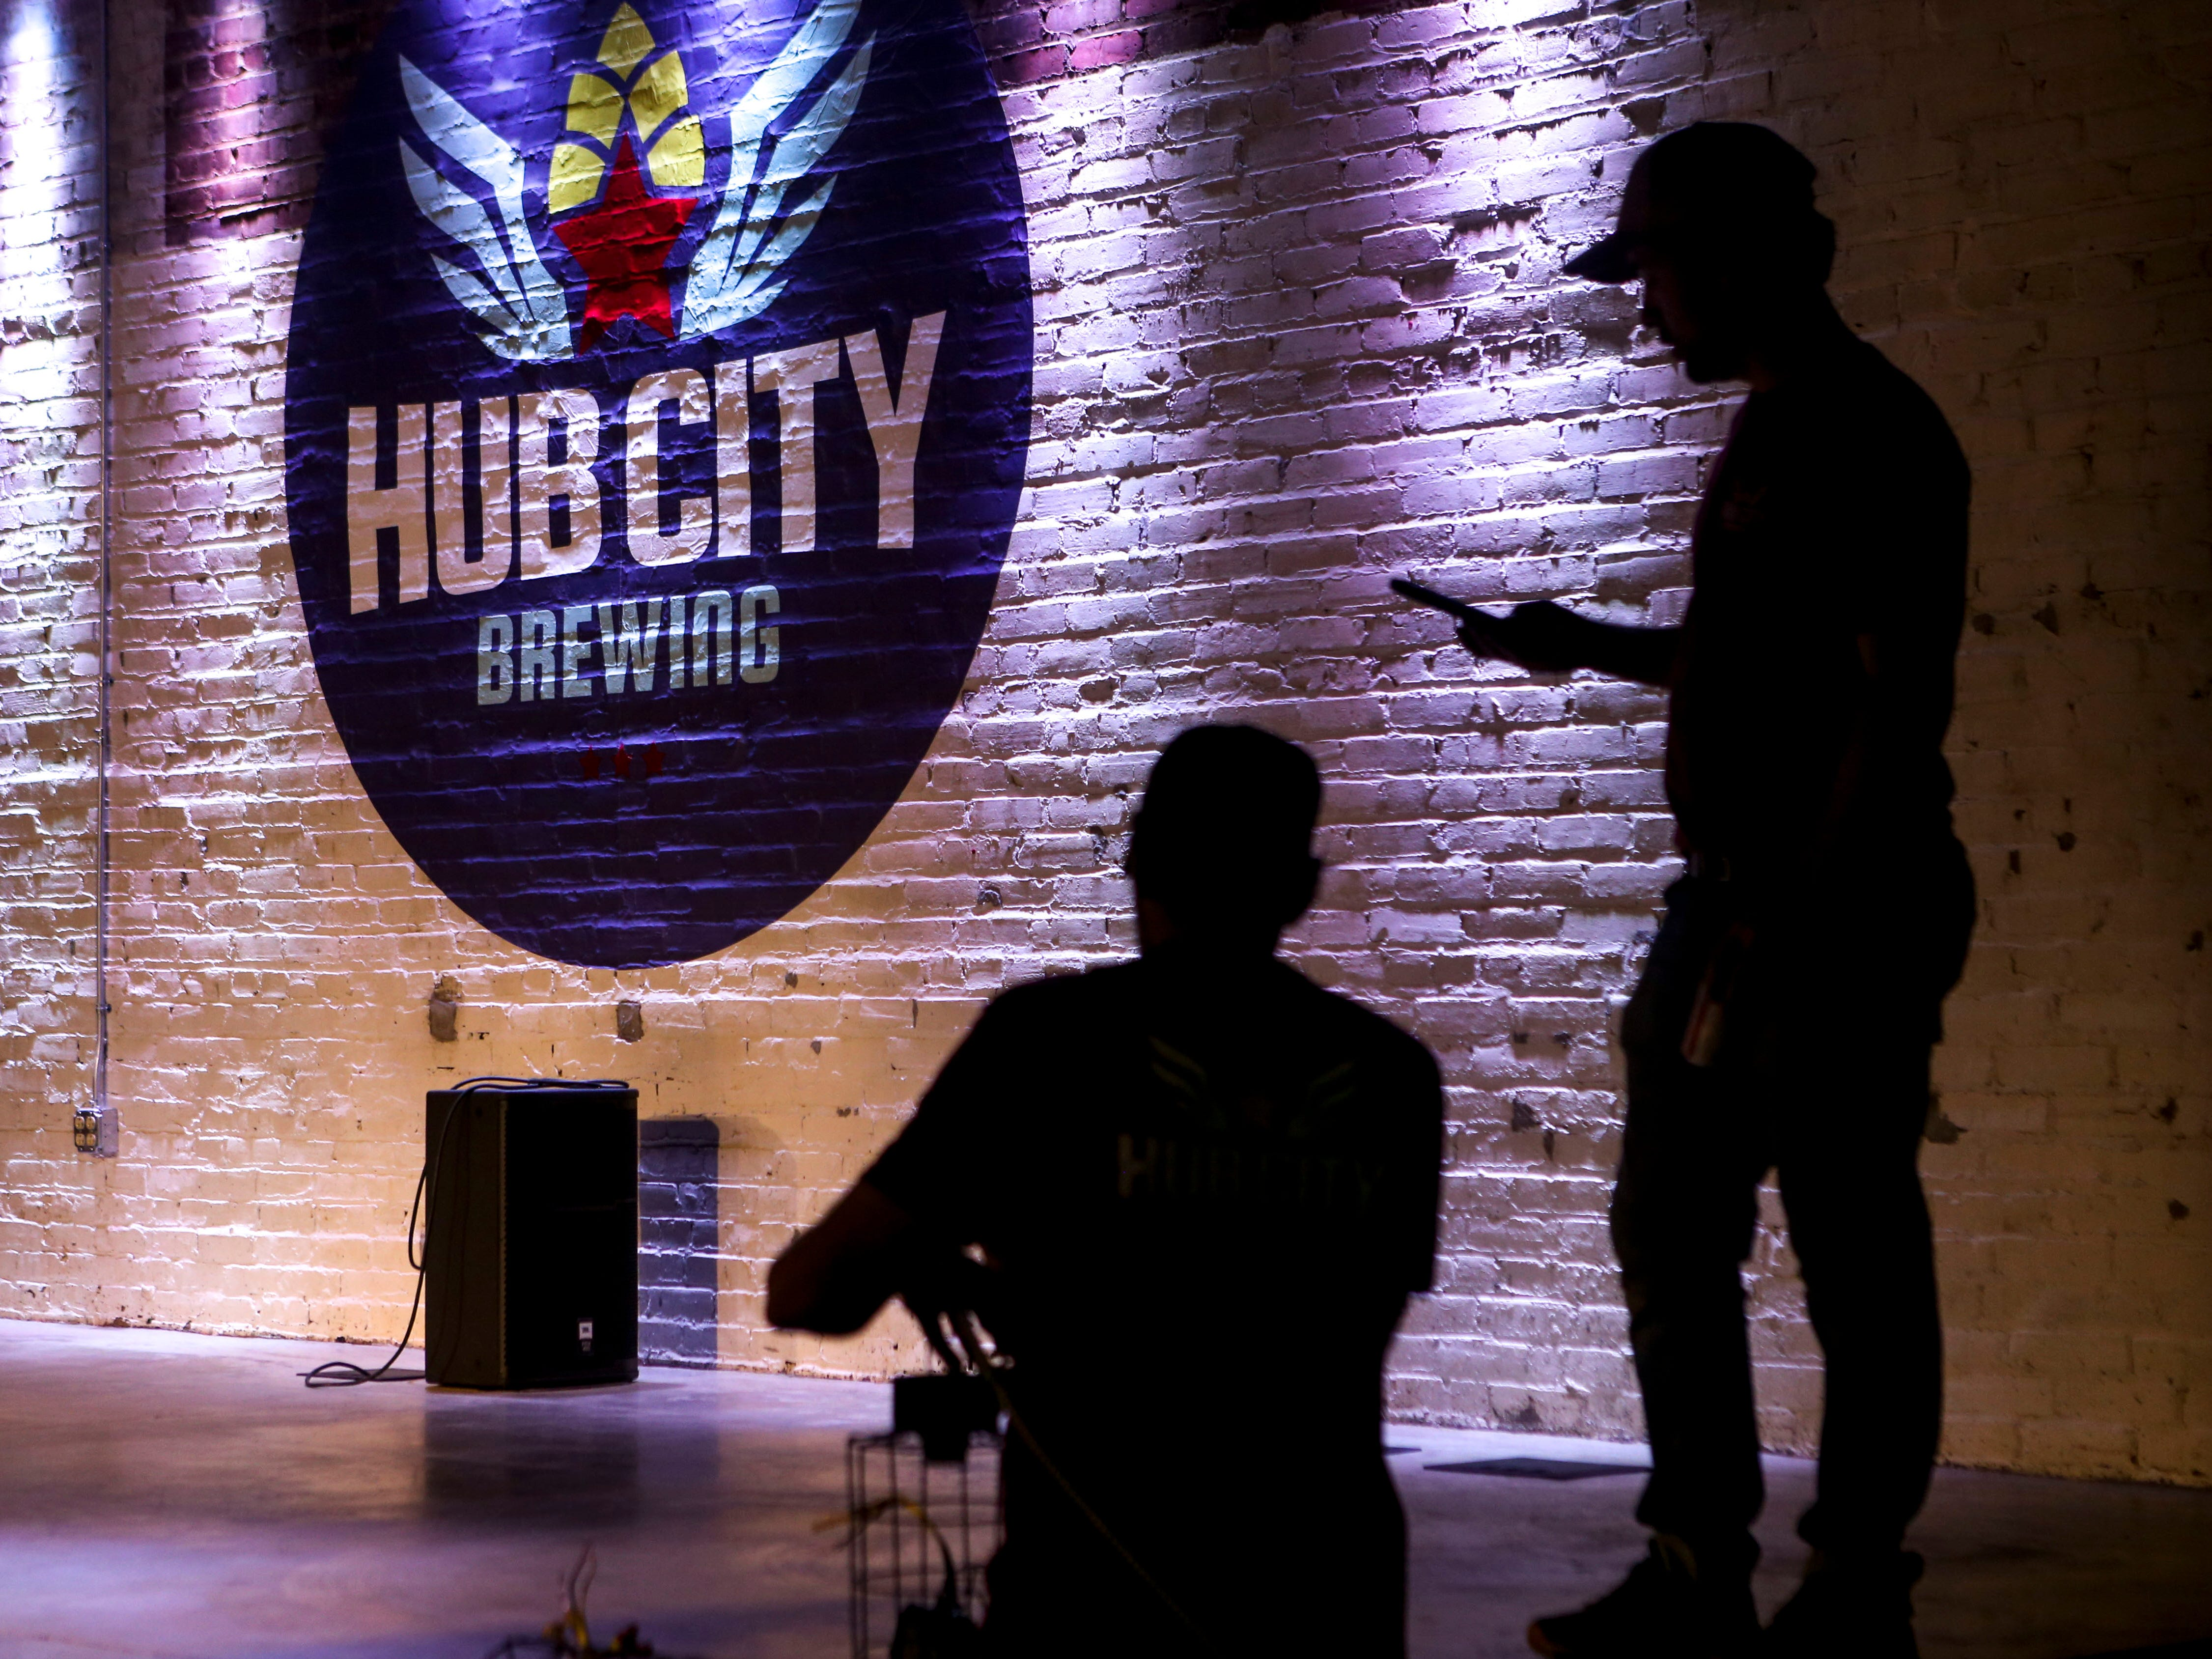 Pat Keith, a Delta Electric electrical technician, left, and Lewis Silvers with Hub City, right, test out the lights to be used on the stage at Hub City Brewing in Jackson, Tenn., on Wednesday, Feb. 6, 2019.